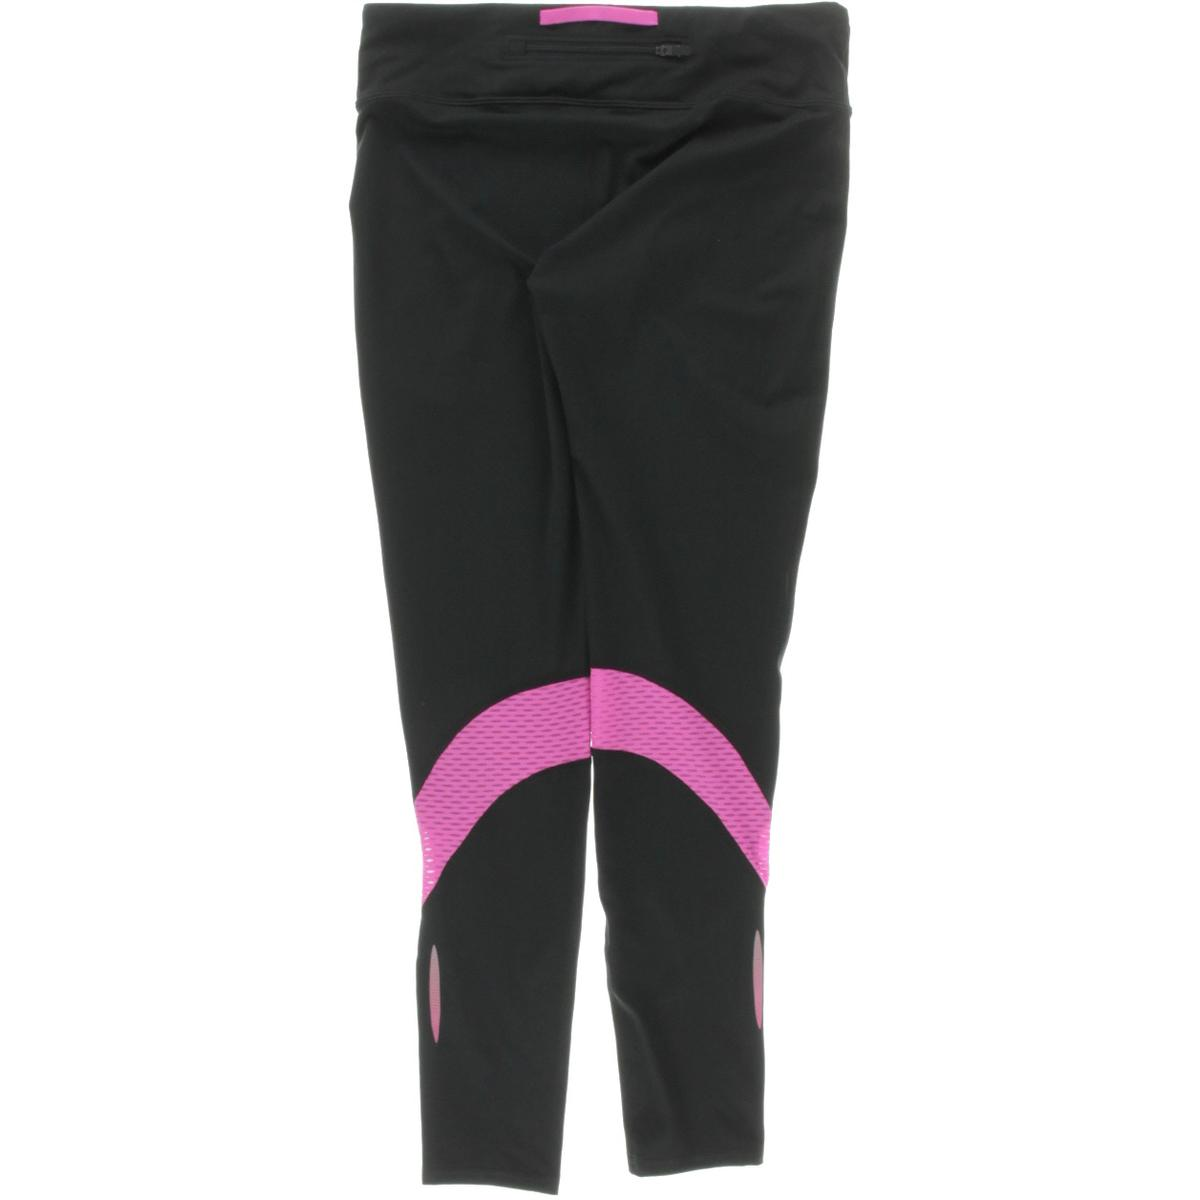 Simple Under Armour Womens Sonic Compression Shorts  These Are A Little Short, Id Put Them Under My Basketball Shorts When Running Nike Pro 3&quot Compression Short  Womens  Black This Is $2799 For A Nicer Brand Of Spandex But